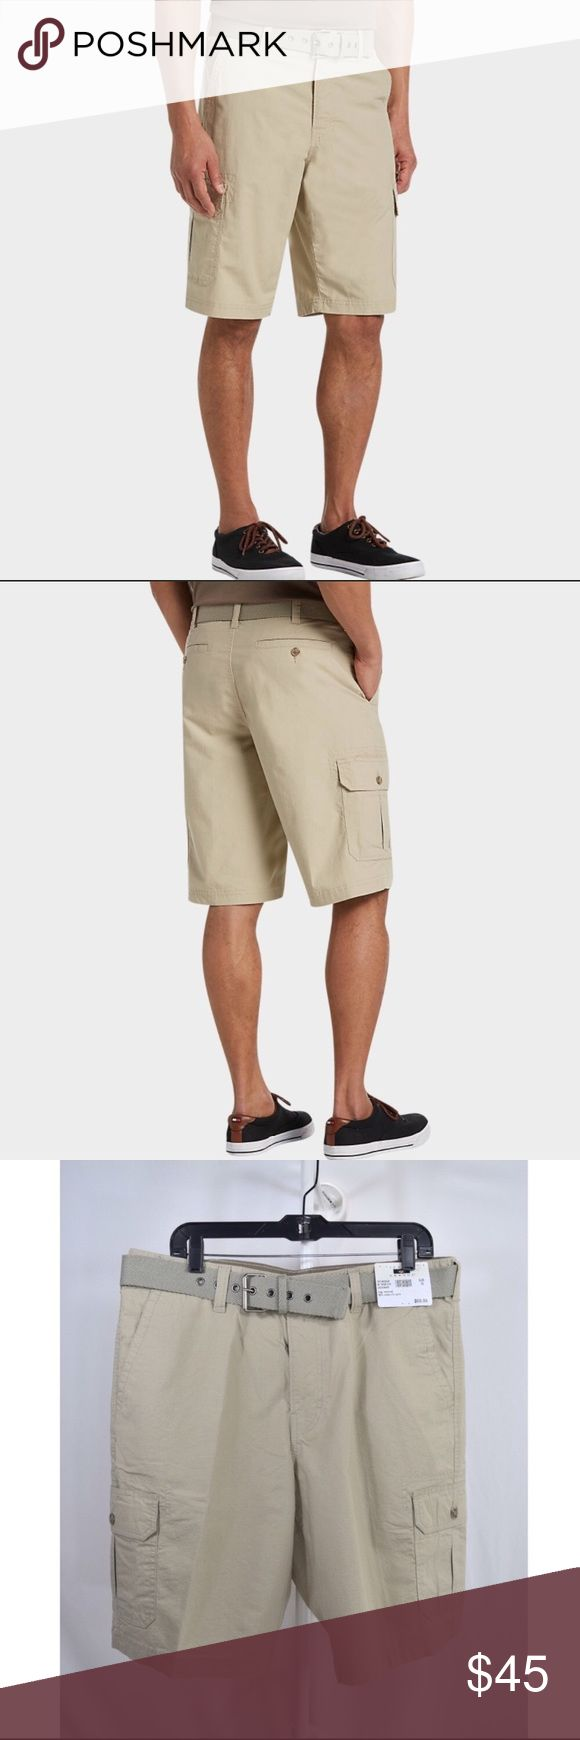 """NWT Men's Joseph Abboud Tan Cargo Shorts Joseph Abboud Men's Shorts🔸Tan🔸Size 36🔸Cargo pockets🔸Matching belt🔸98% cotton 2% lycra🔸Front and back pockets🔸Modern Fit🔸Machine washable🔸Brand new with tags🔸Inseam is 11""""🔸MSRP $69.99🔸Smoke and pet free home Joseph Abboud Shorts Cargo"""